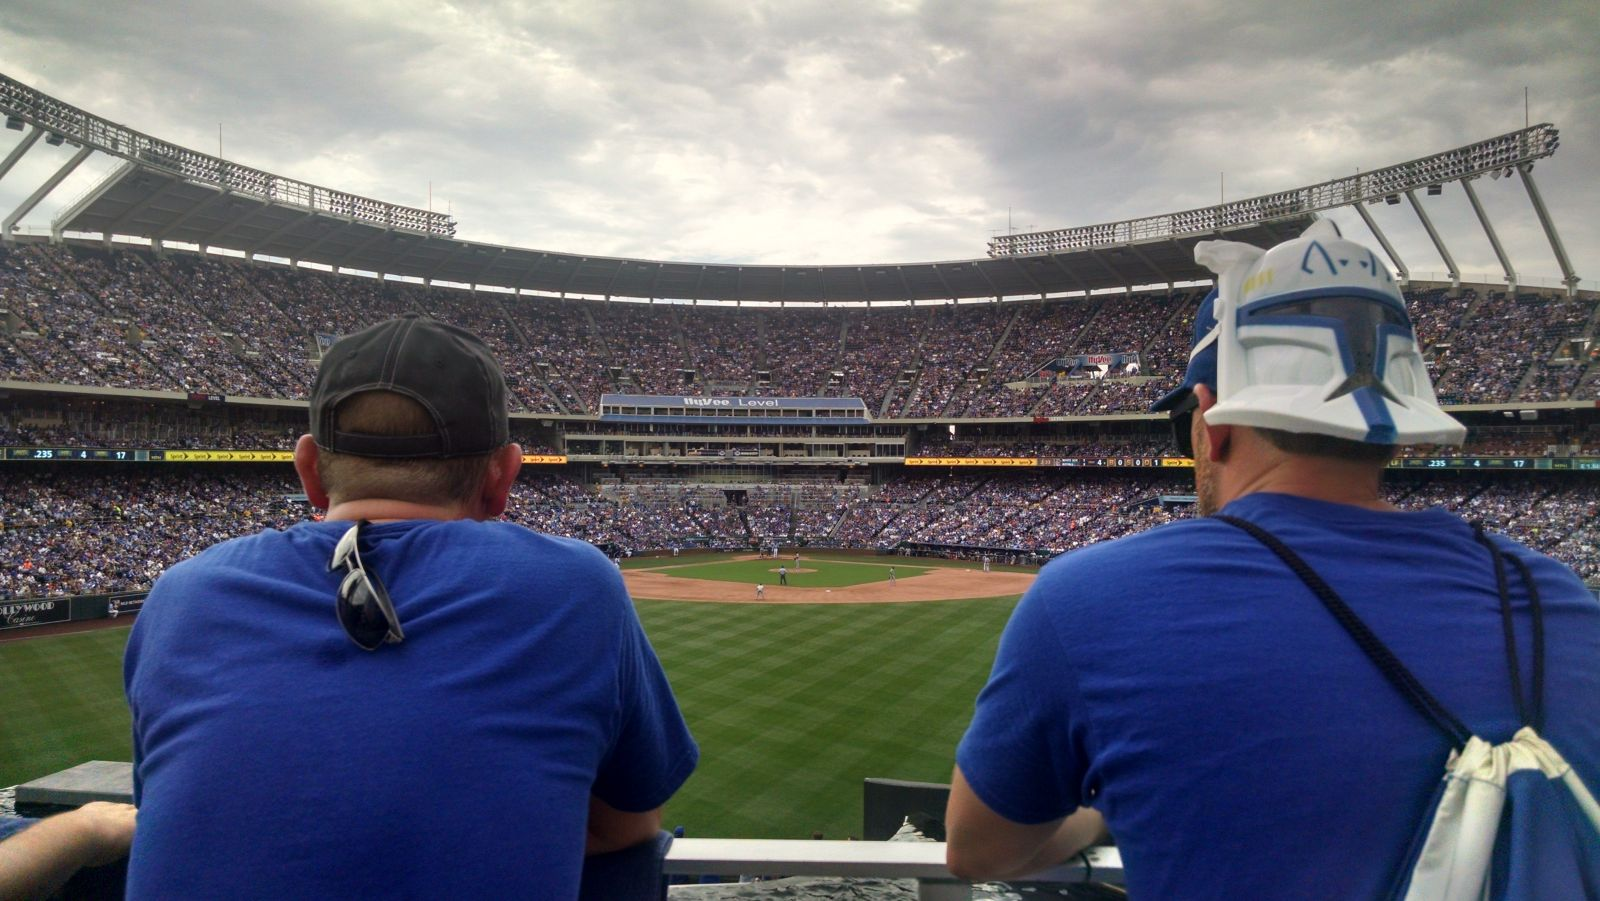 Seat View for Kauffman Stadium Standing Room Only, Row GENERAL